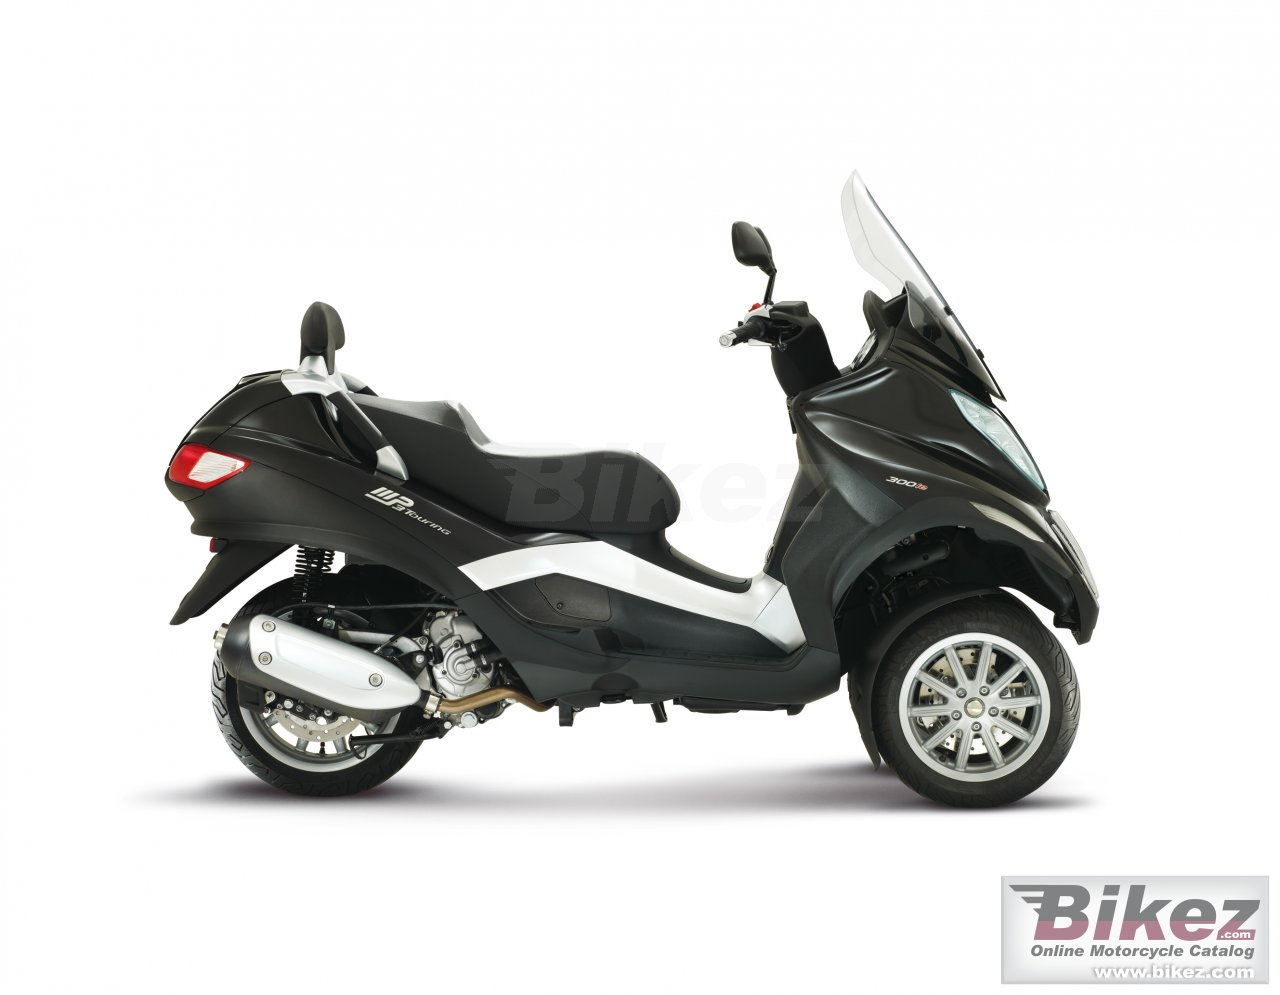 Big Piaggio mp3 touring 300 picture and wallpaper from Bikez.com